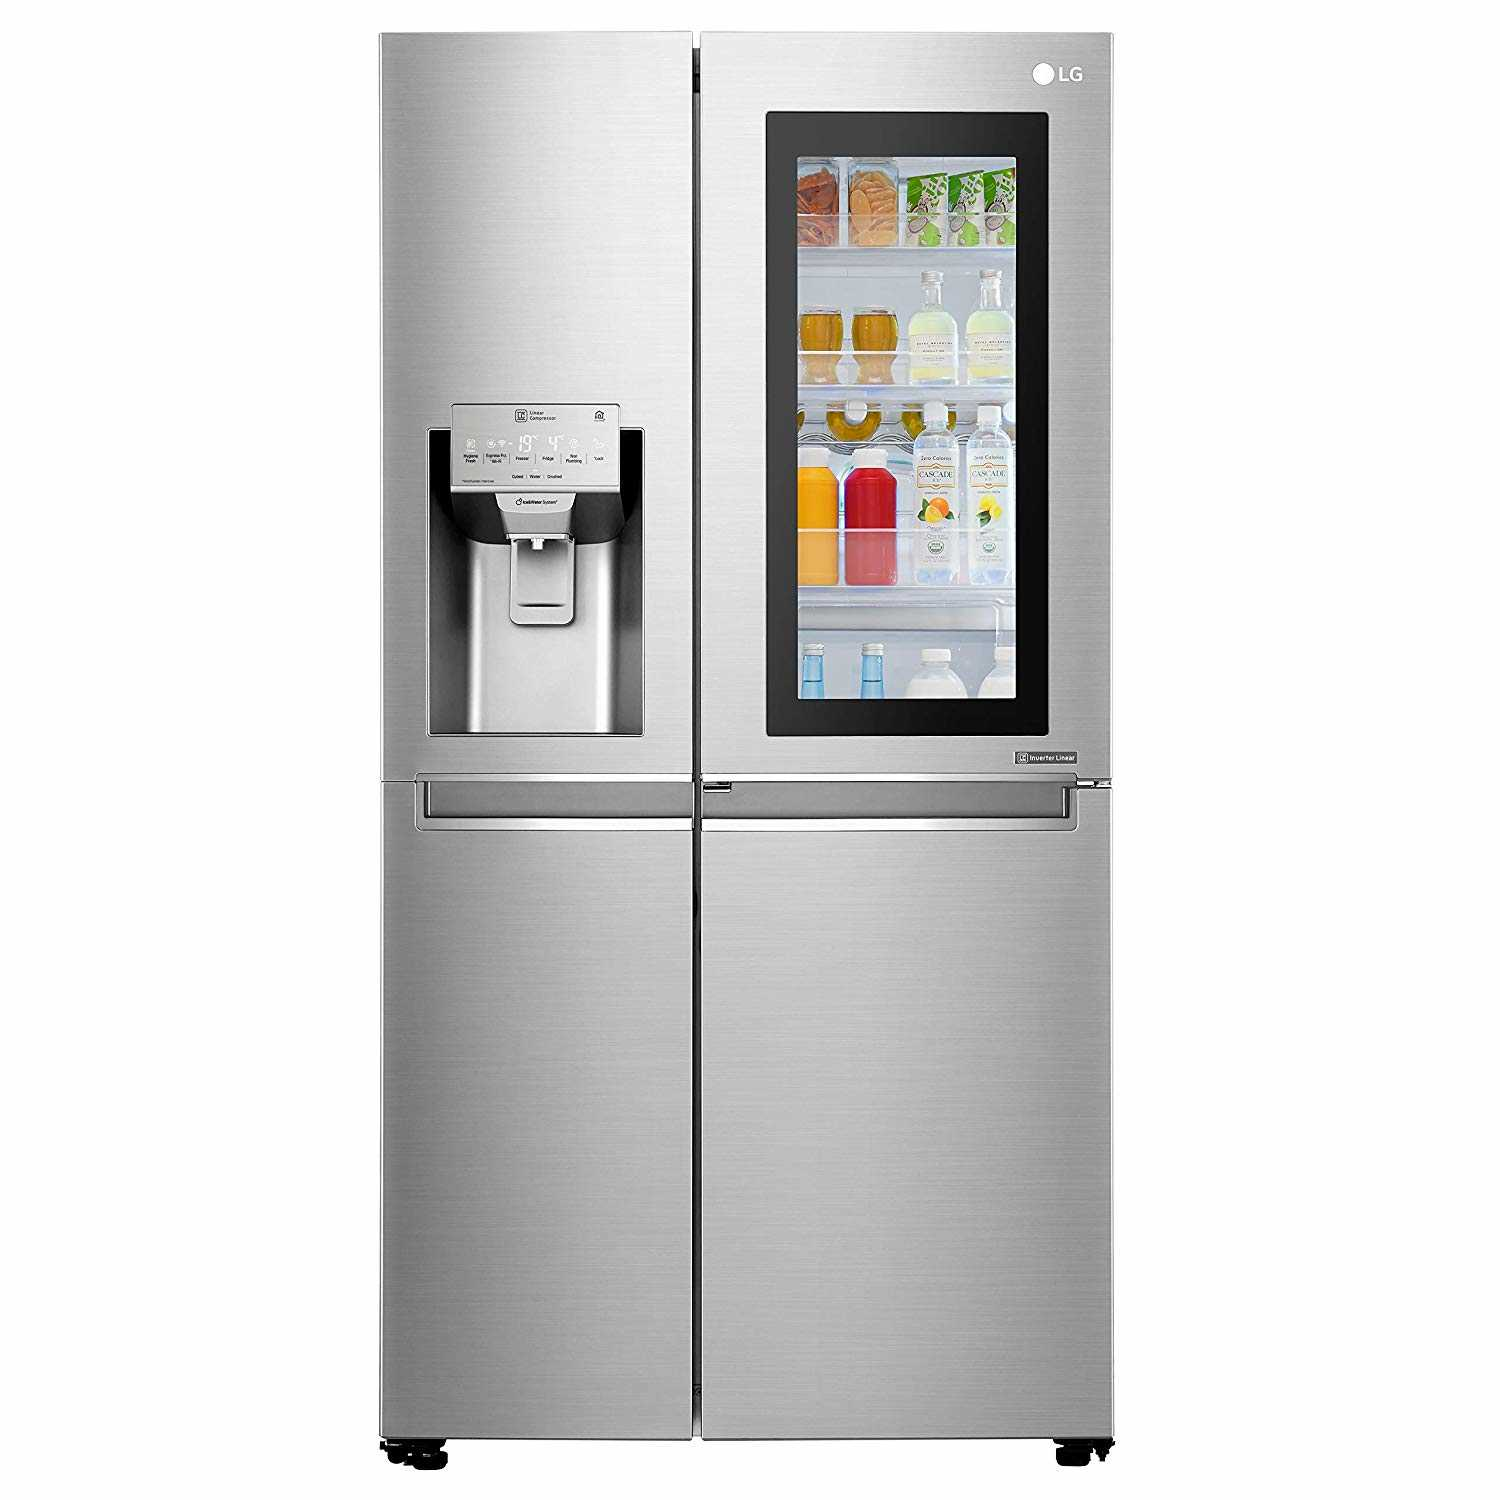 LG GC X247CSAV ANSQEBN 668 Liter Frost Free Side by Side Refrigerator